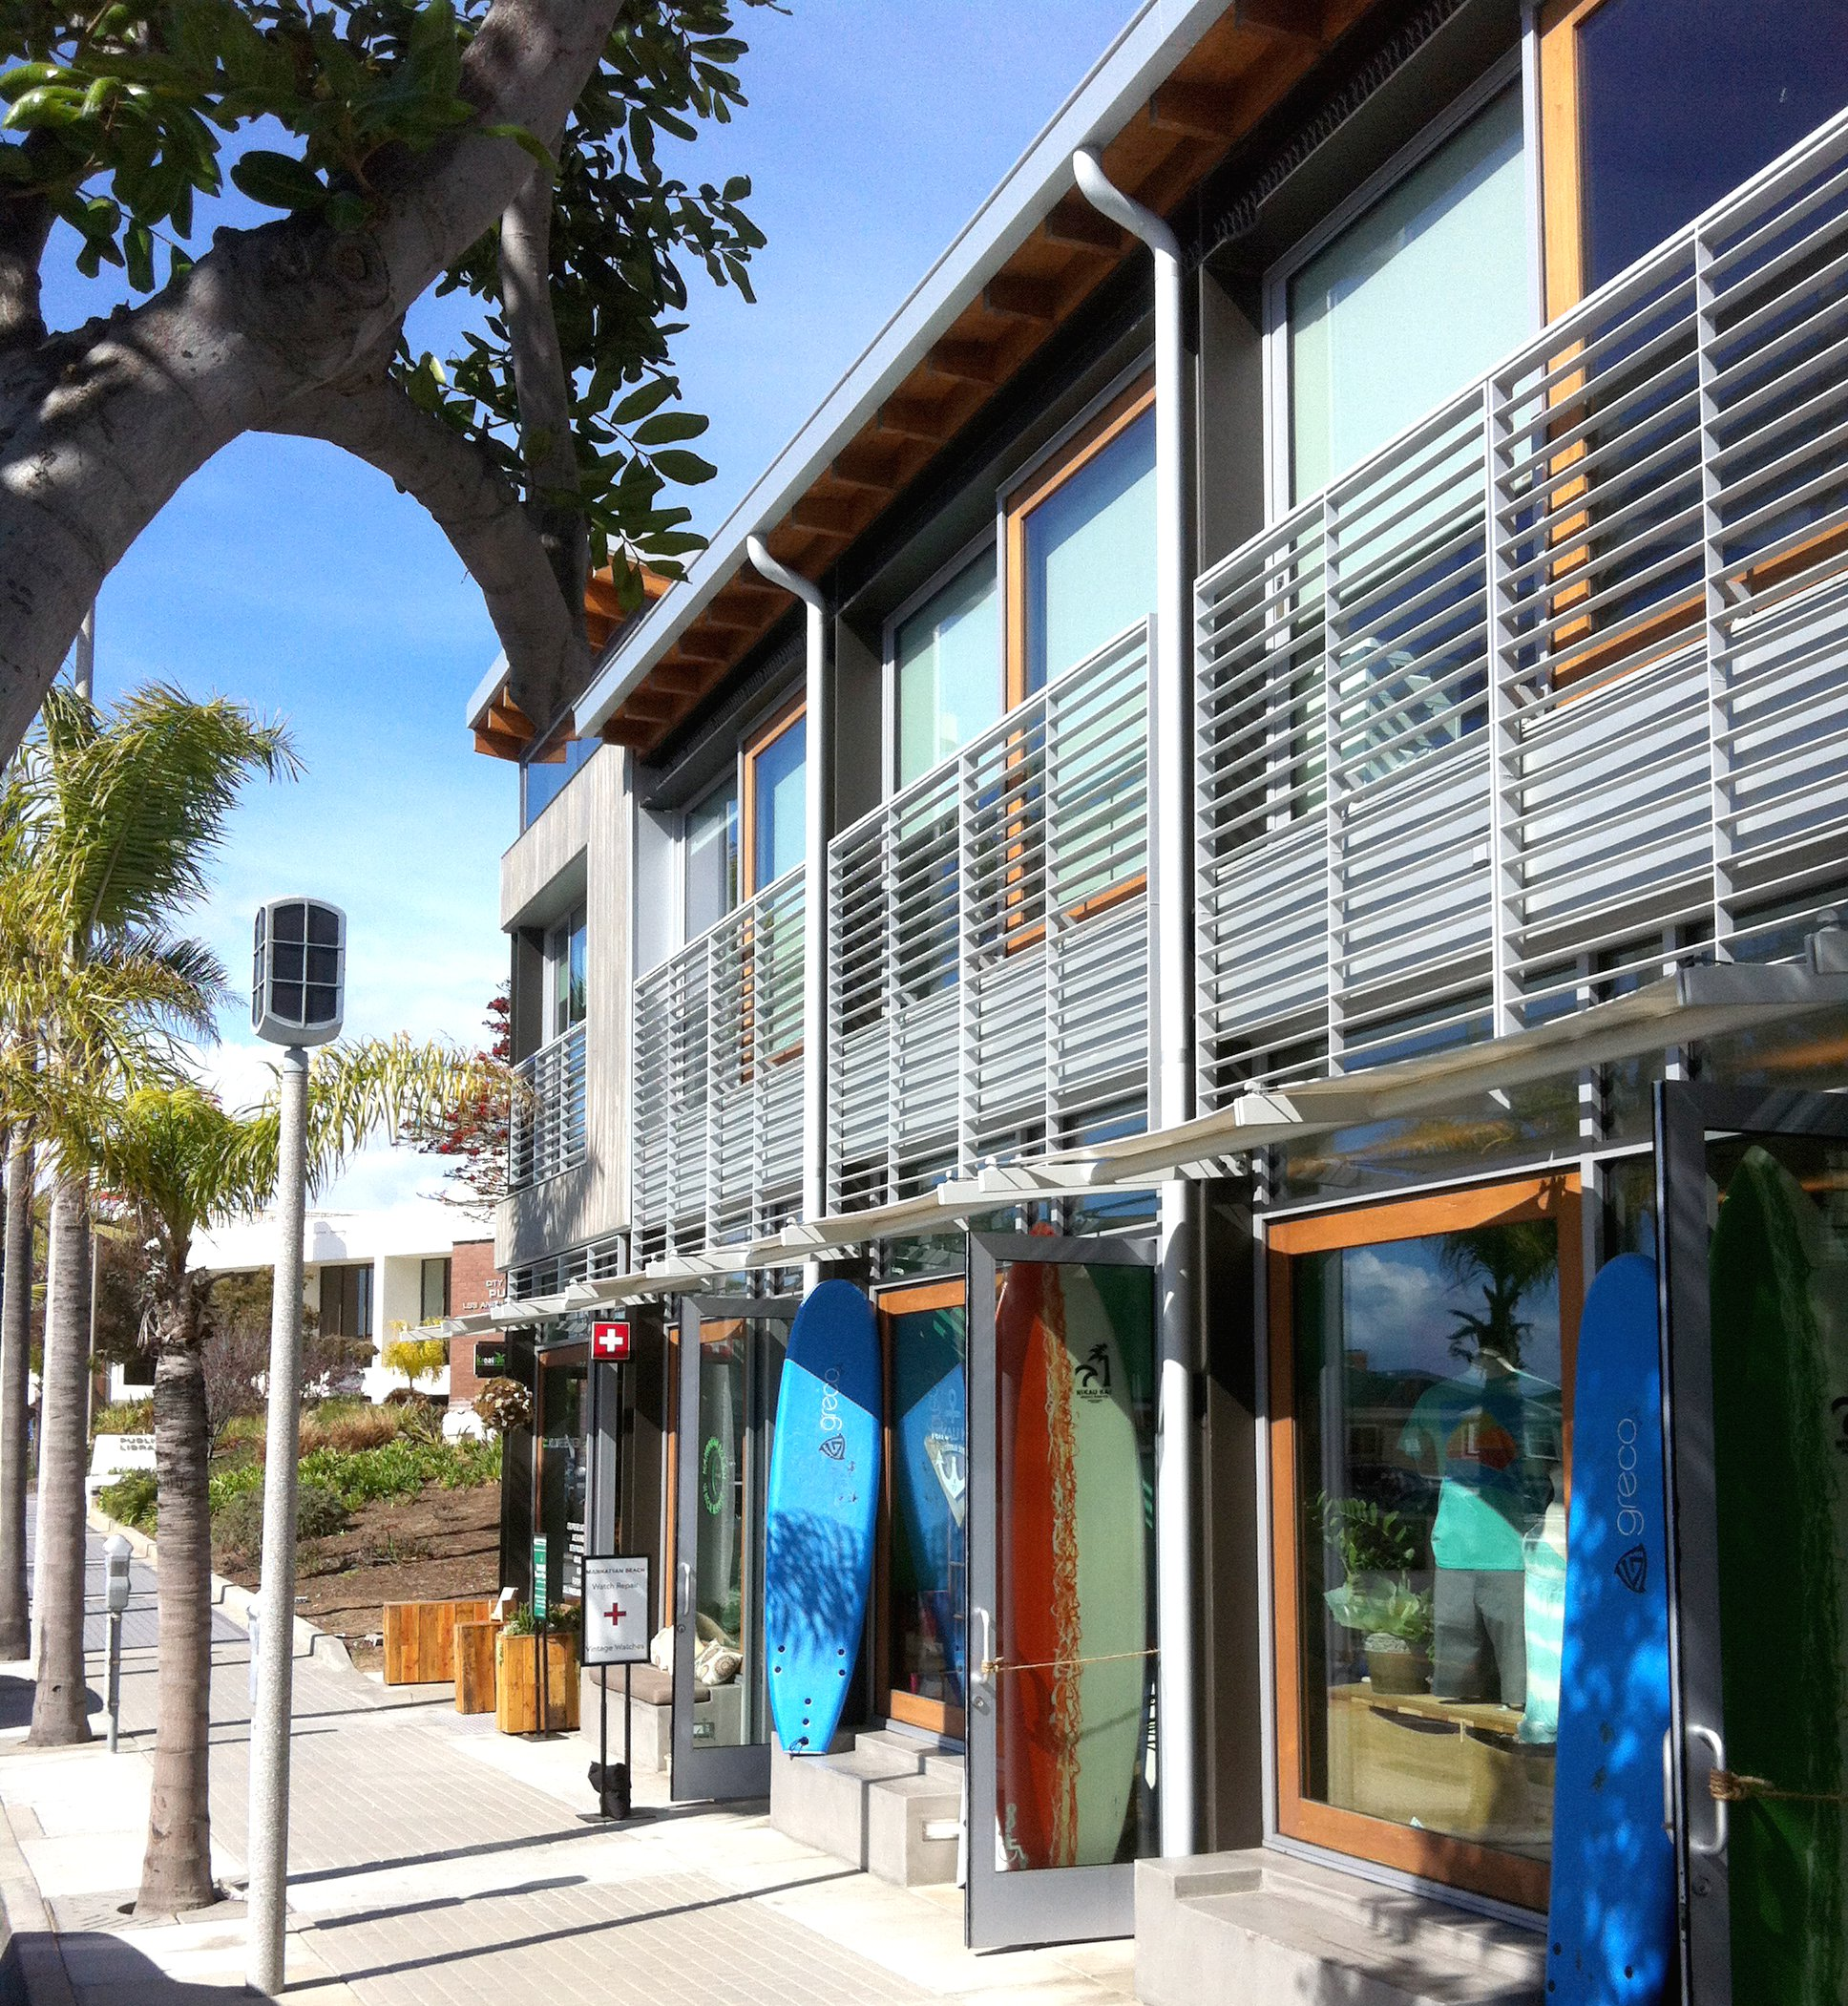 Manhattan Beach Shopping and Surfboards